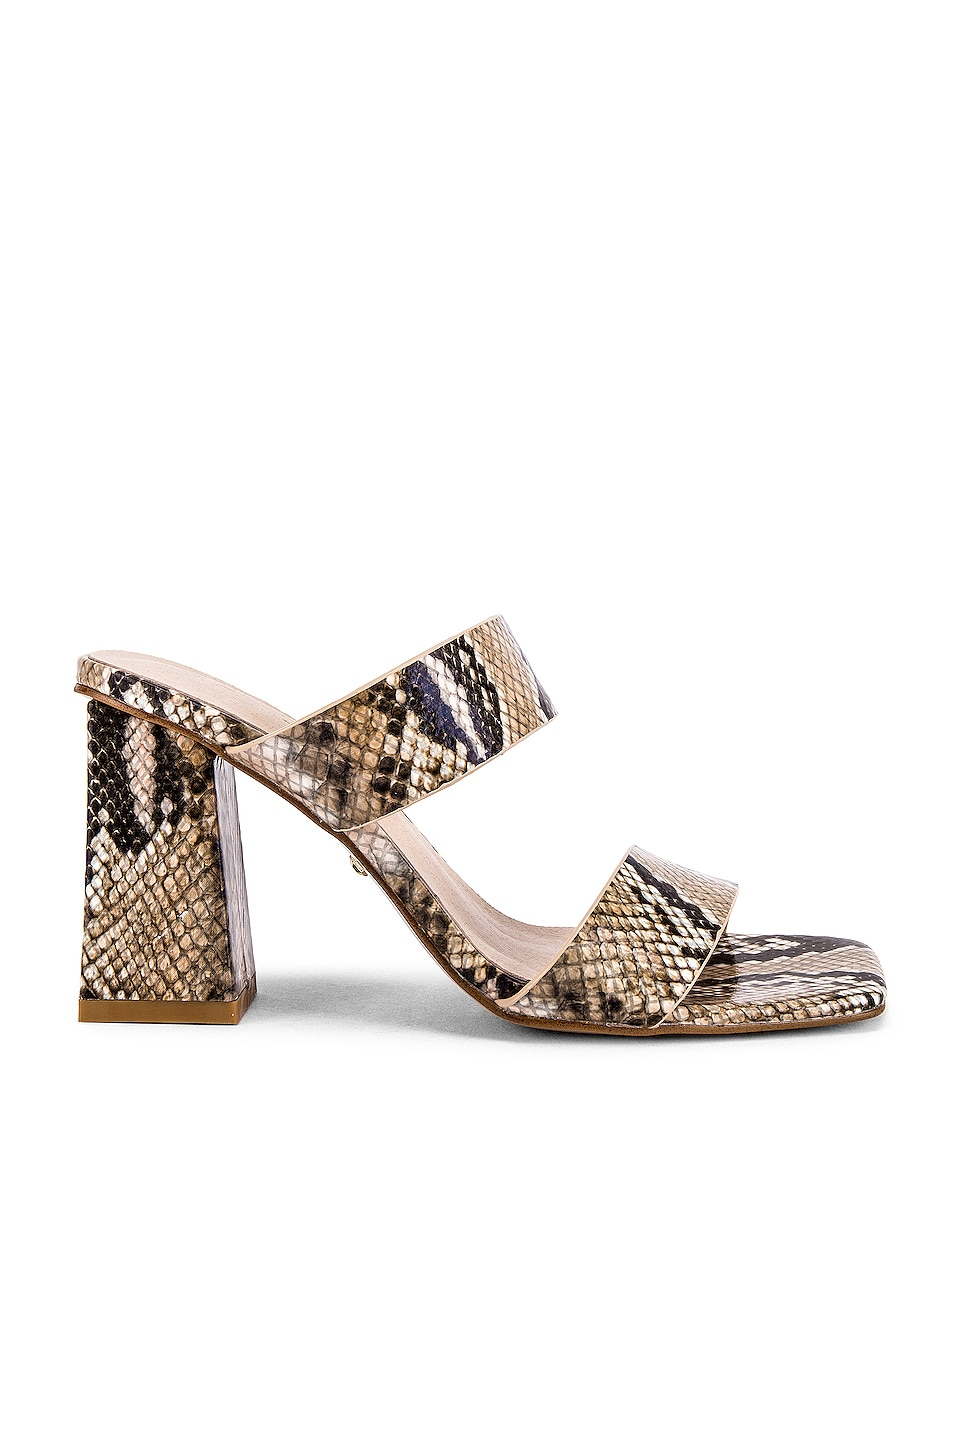 RAYE Pixie Heel in Natural Snake